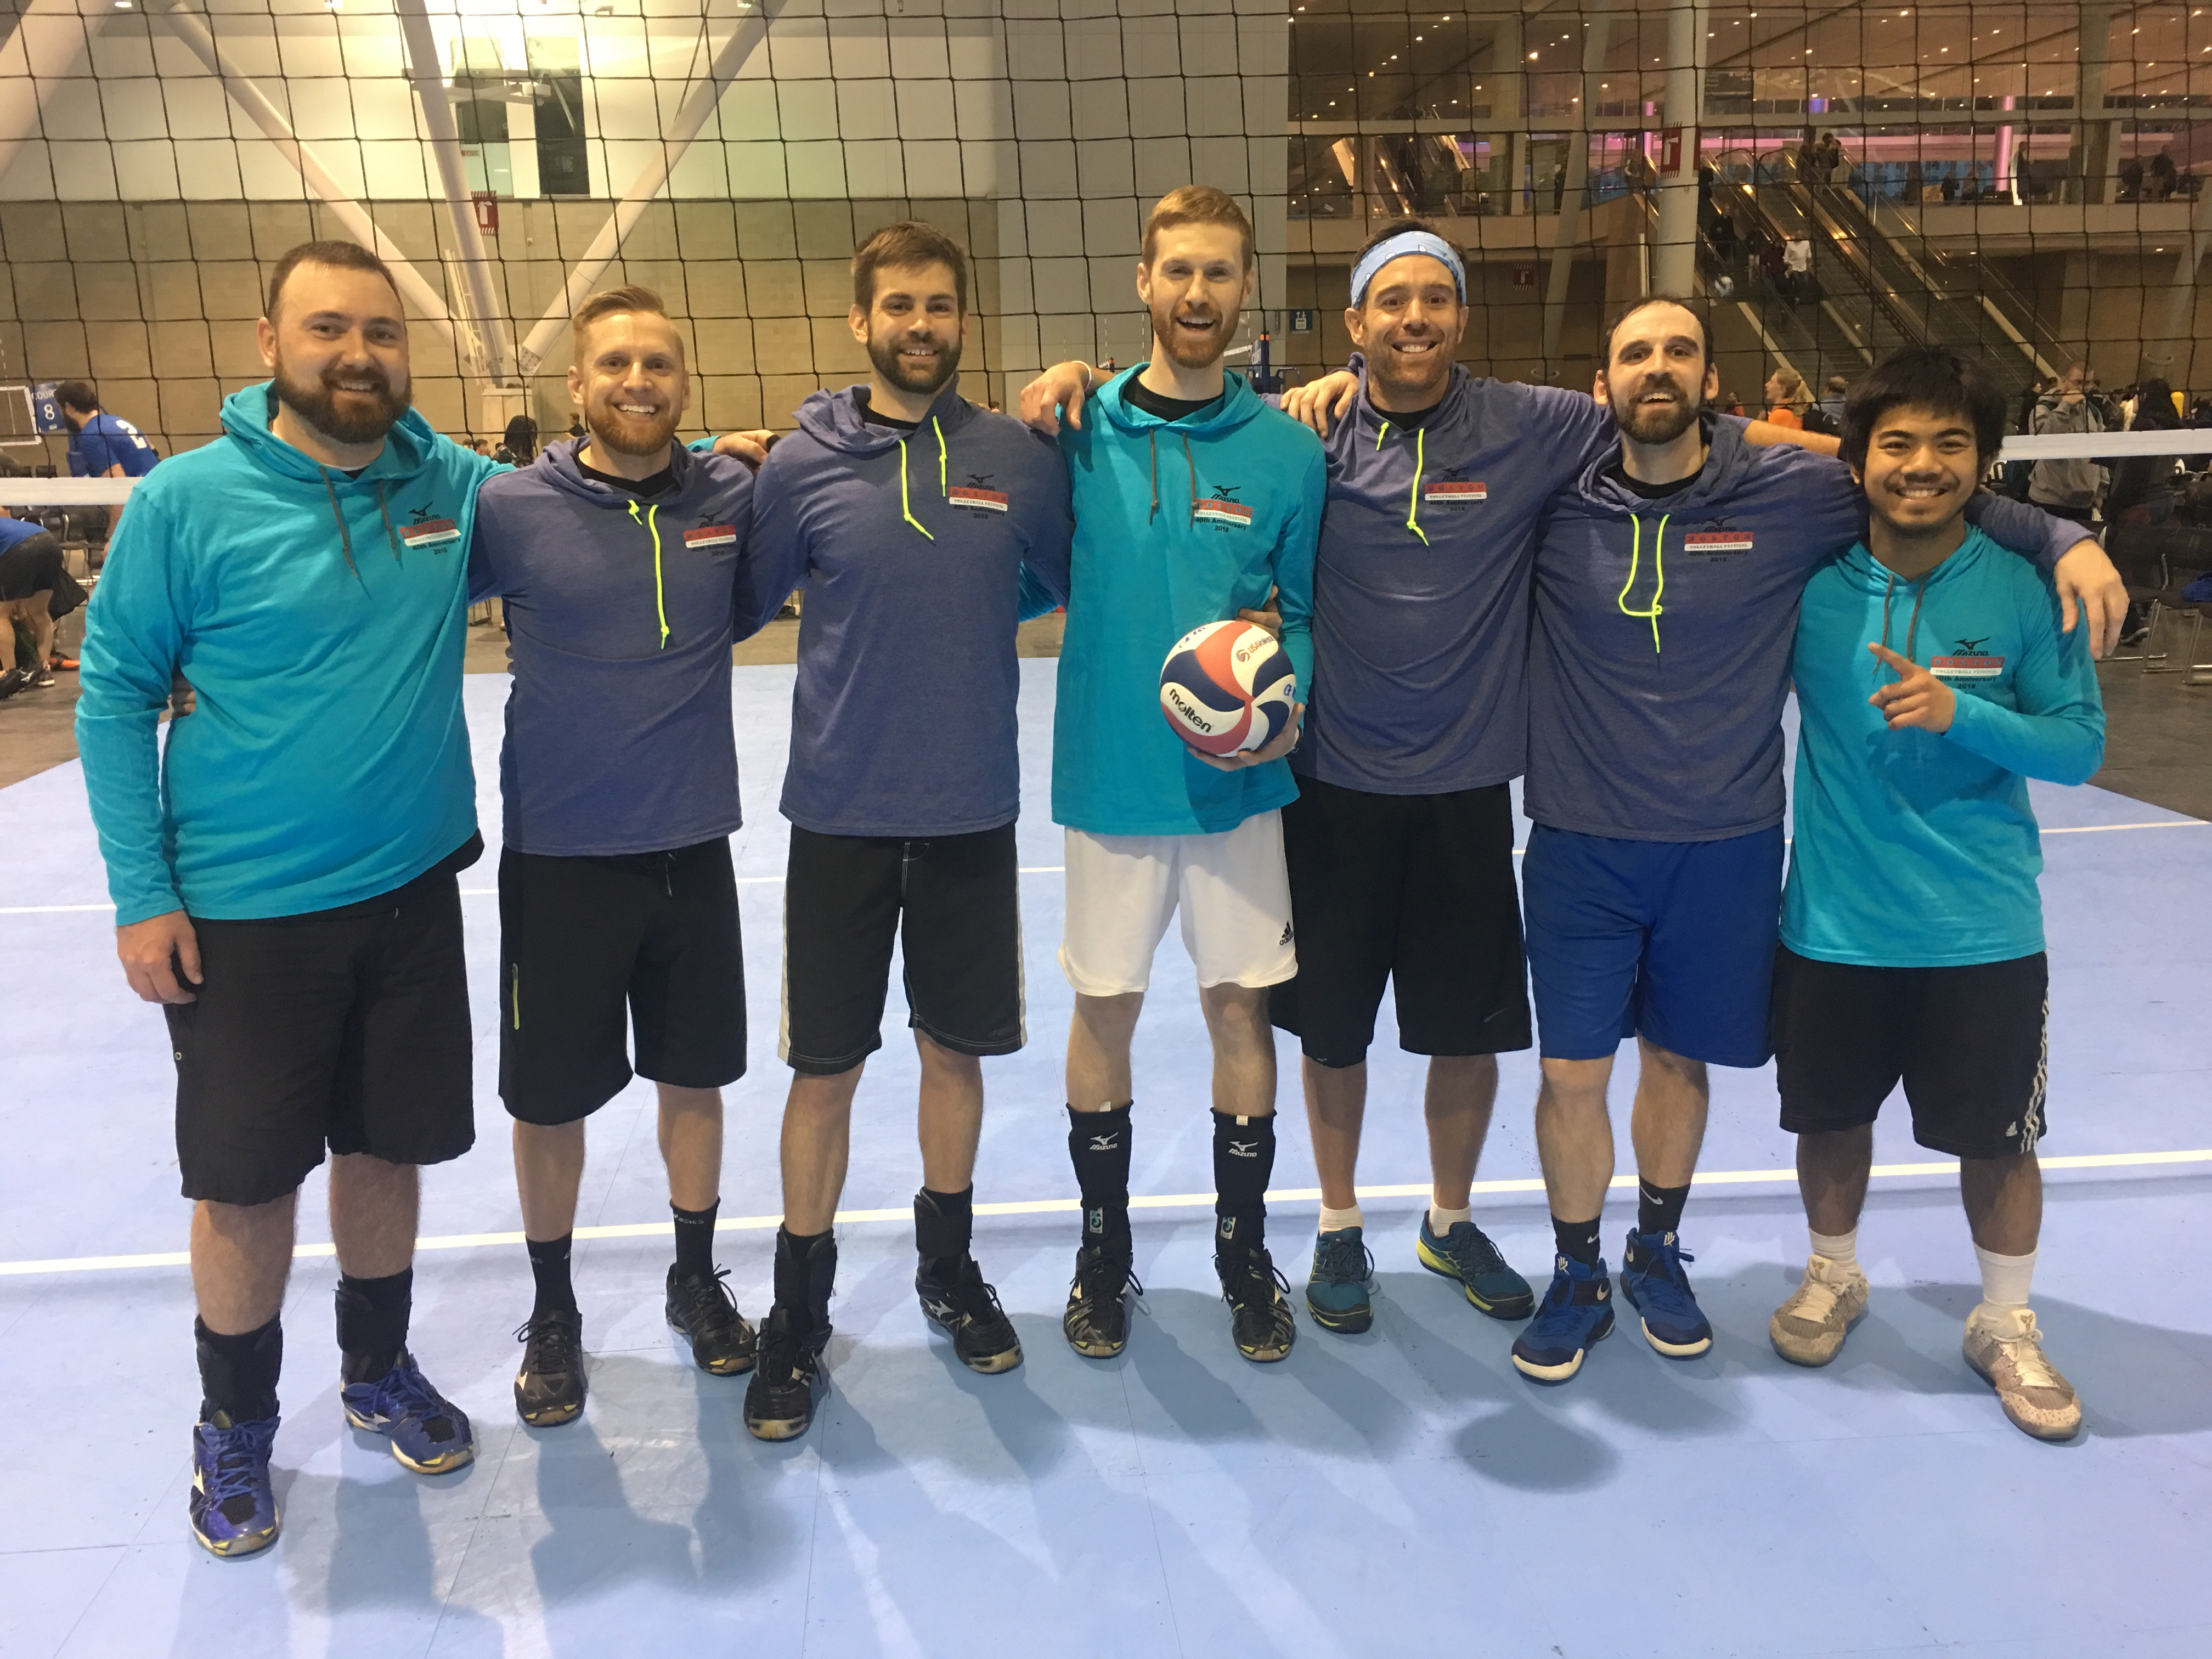 Quinlan Realty Group beats Mass Spike in the Men's C+ at the BCEC